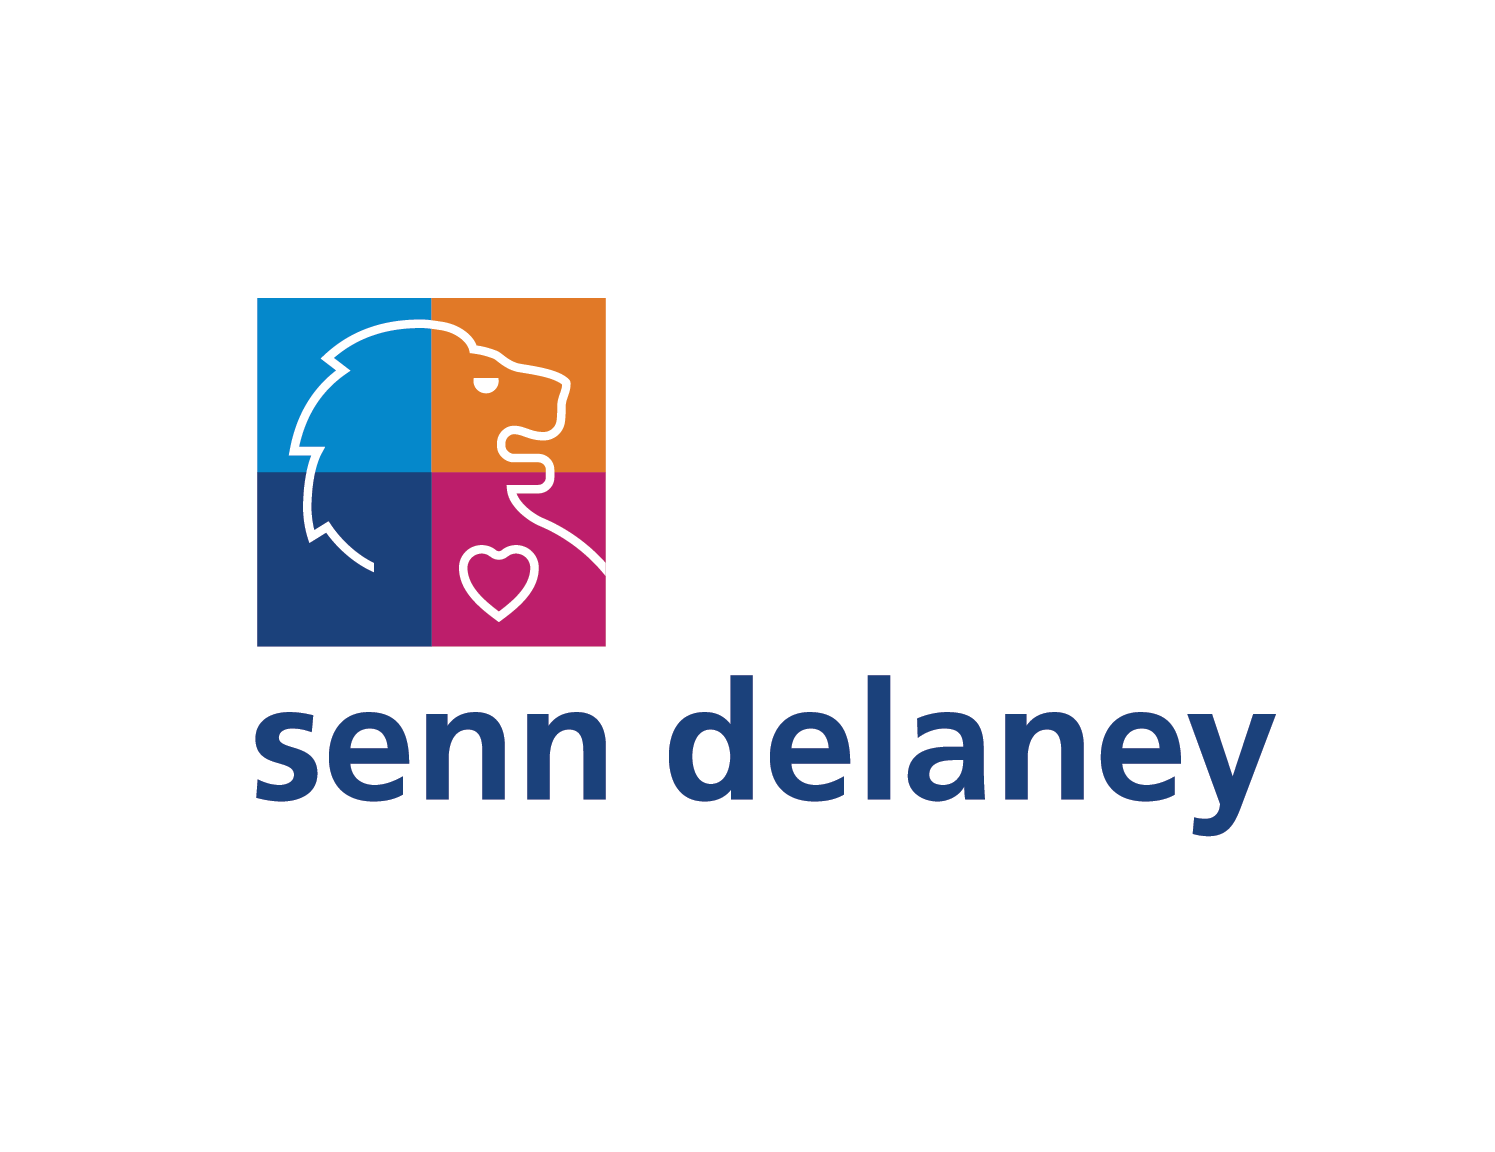 senn delaney logo